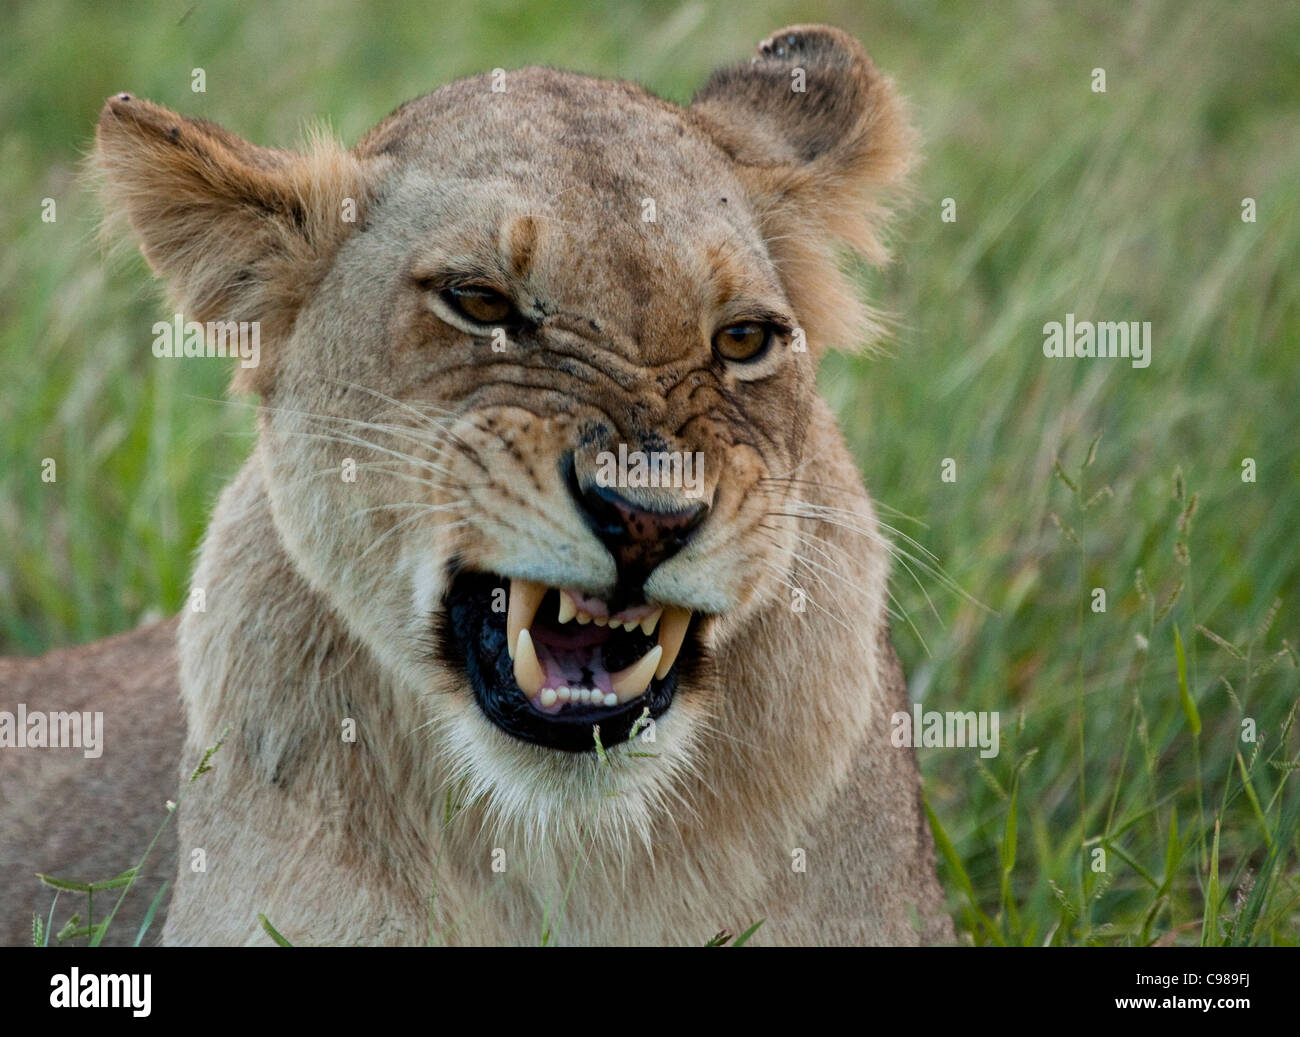 Tight portrait of a lion snarling - Stock Image